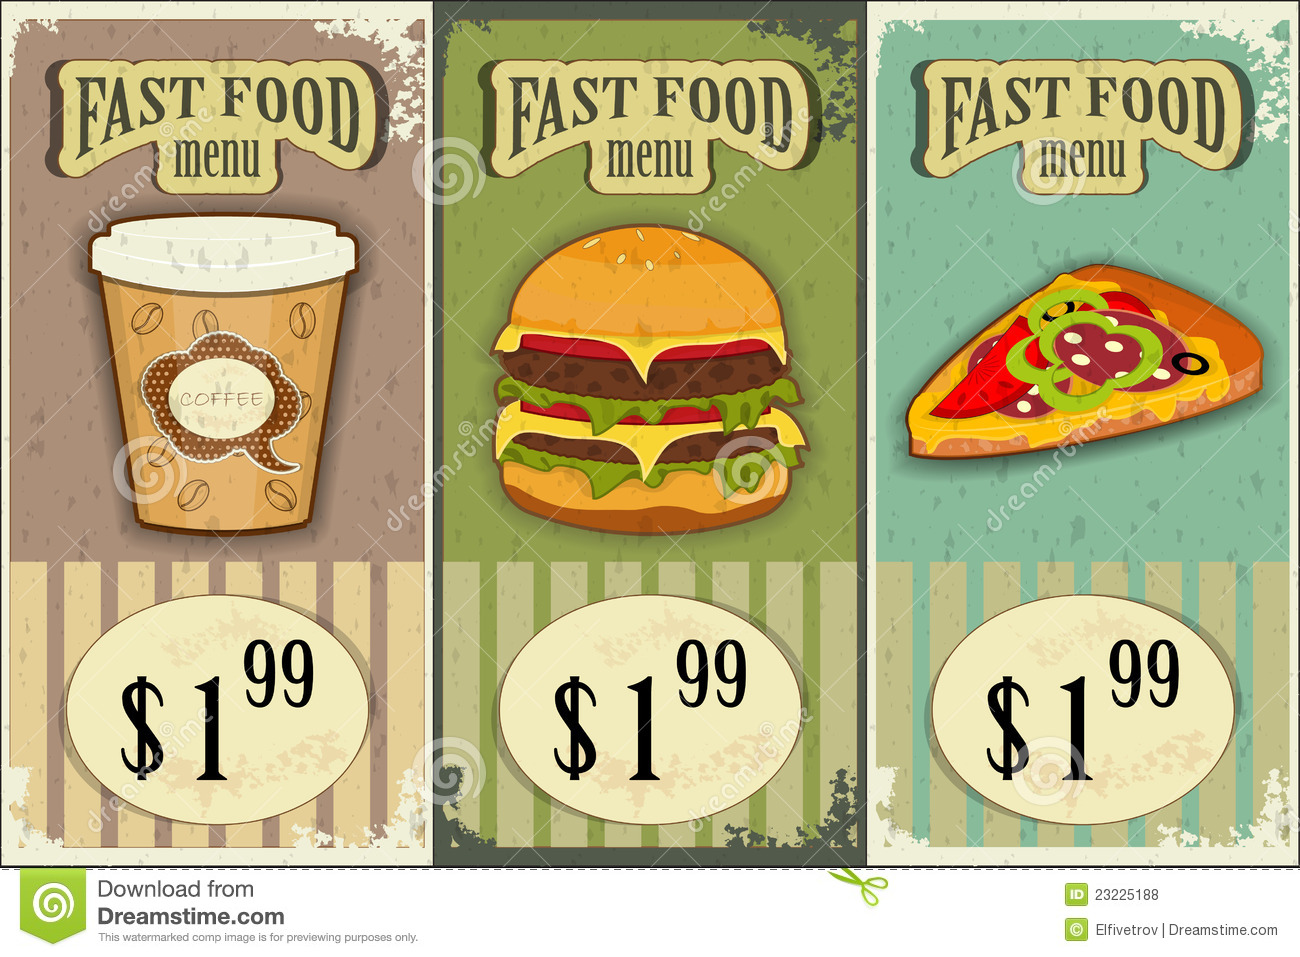 Vintage Fast Food Labels Royalty Free Stock Photos - Image: 23225188